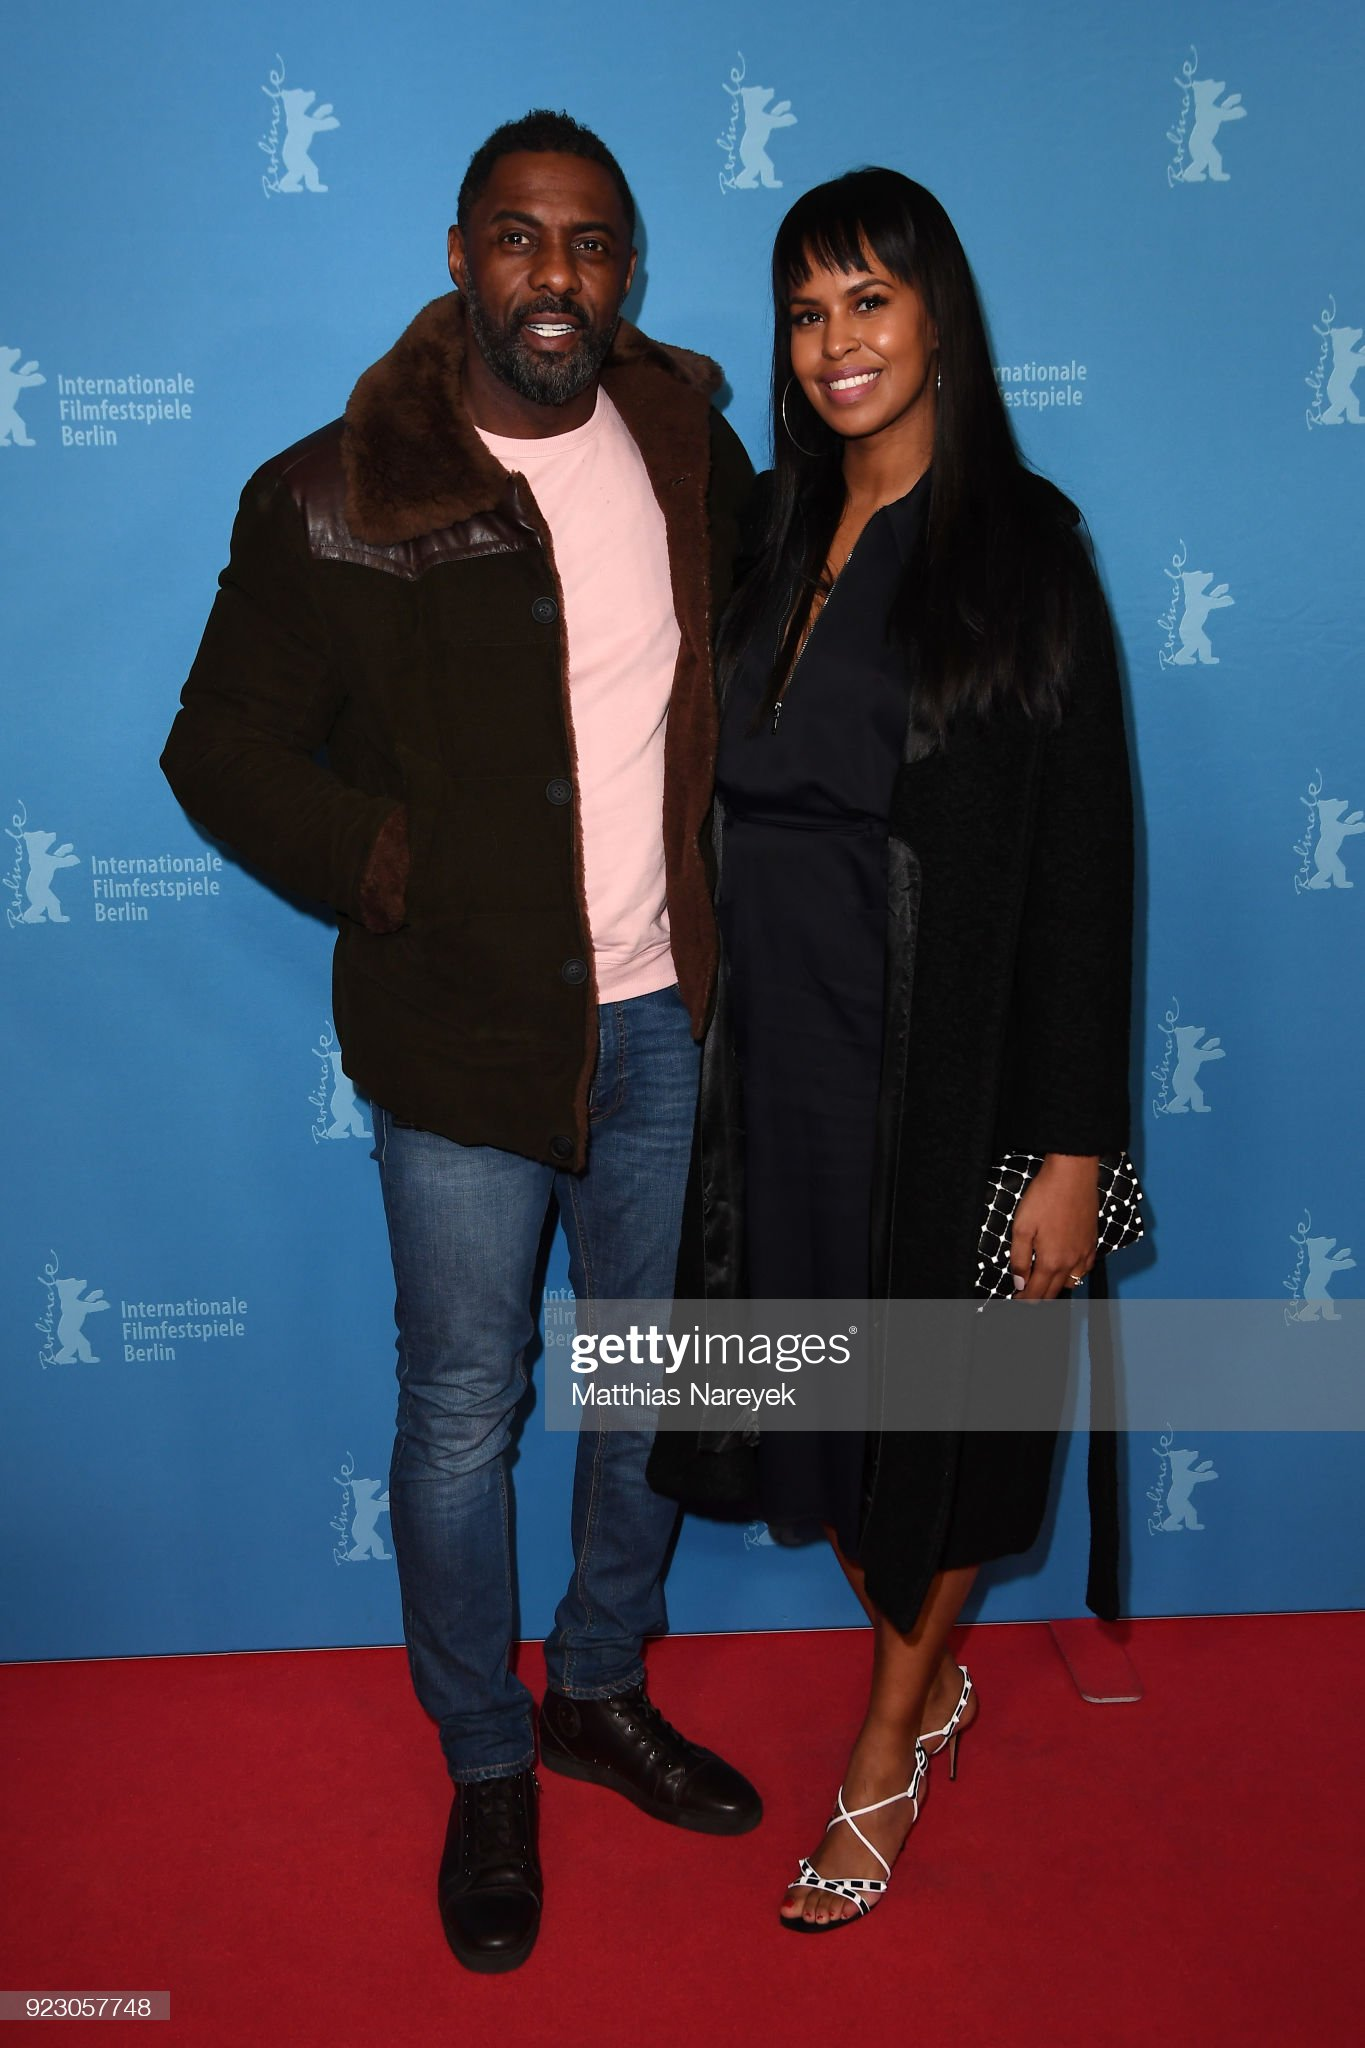 ¿Cuánto mide Idris Elba? - Real height Idris-elba-and-his-girlfriend-sabrina-dhowre-attend-the-yardie-the-picture-id923057748?s=2048x2048